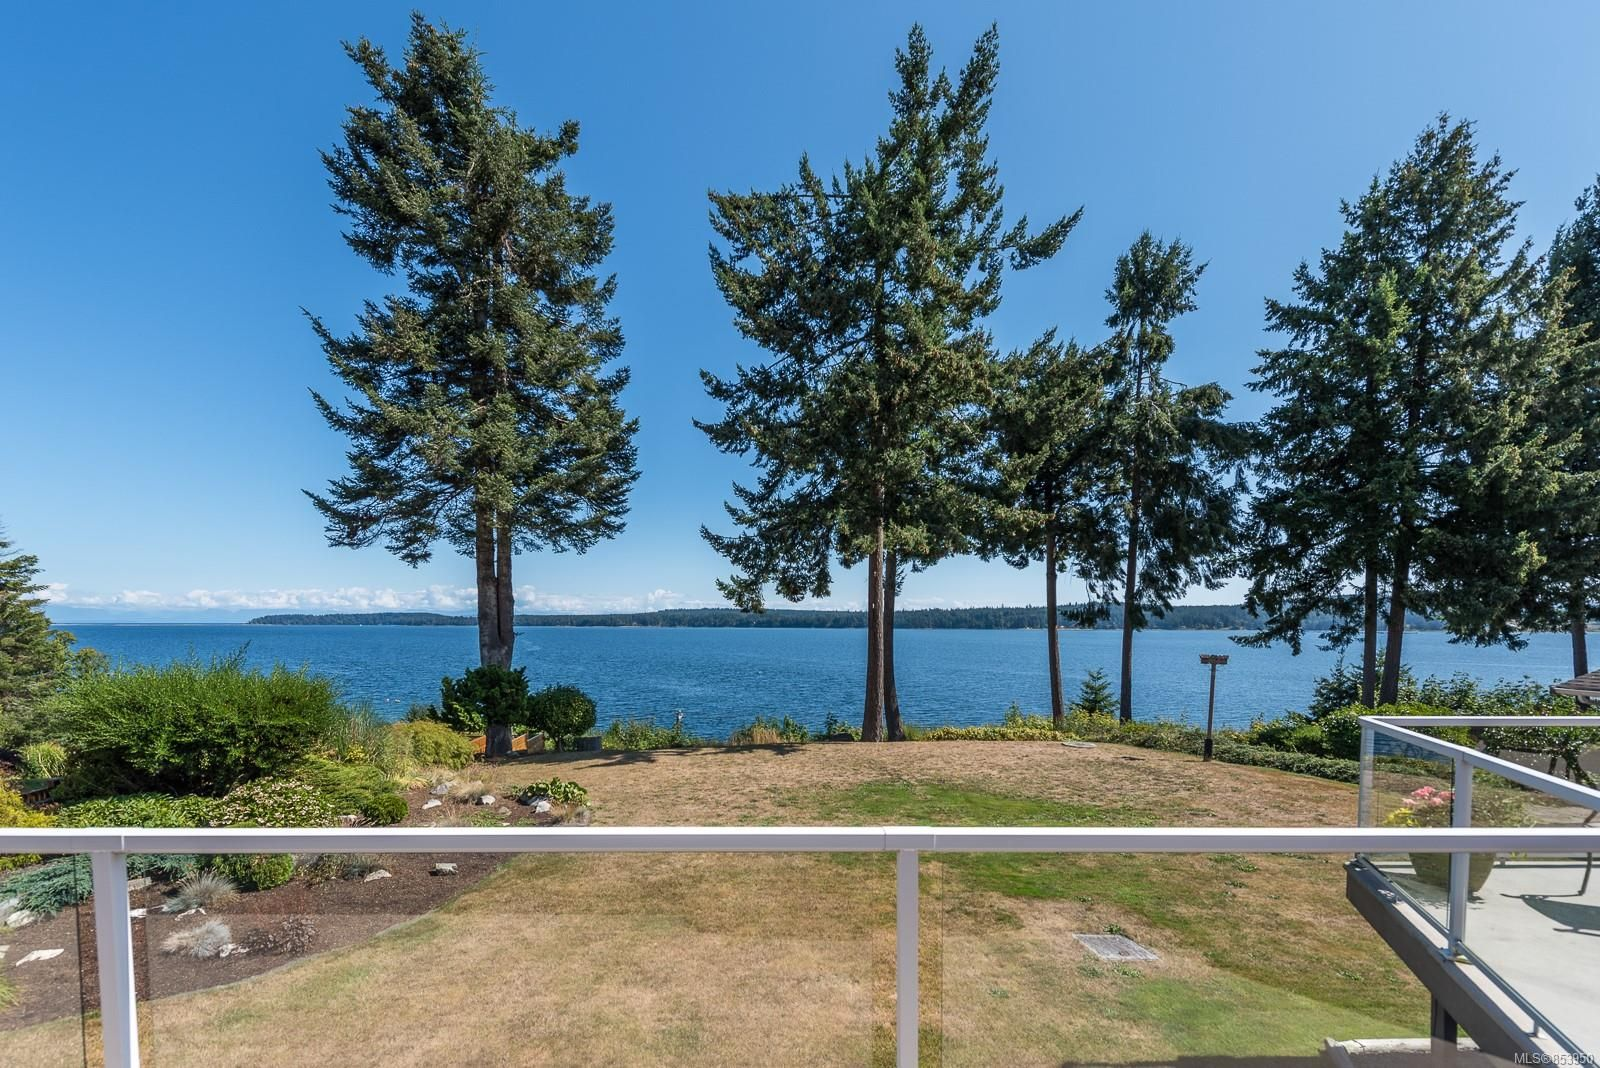 Main Photo: 5880 GARVIN Rd in : CV Union Bay/Fanny Bay House for sale (Comox Valley)  : MLS®# 853950